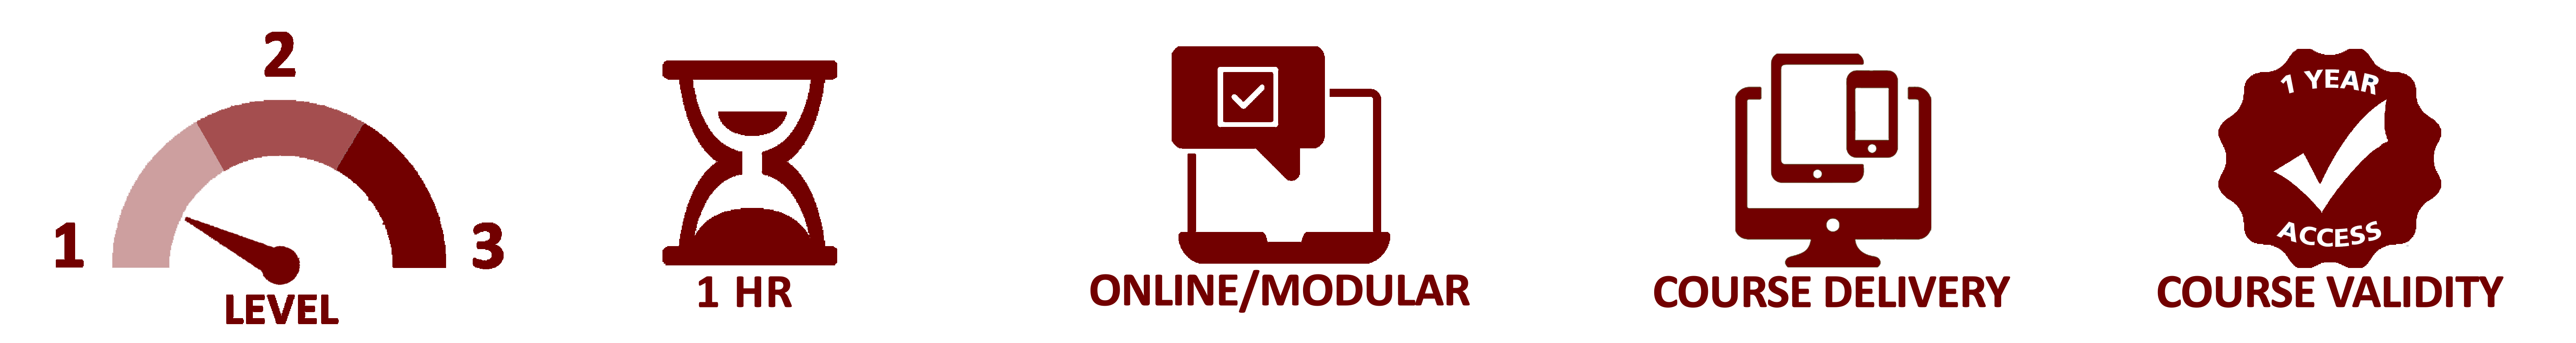 Strategic Planning - Online CPD Course - Mandatory Compliance UK -